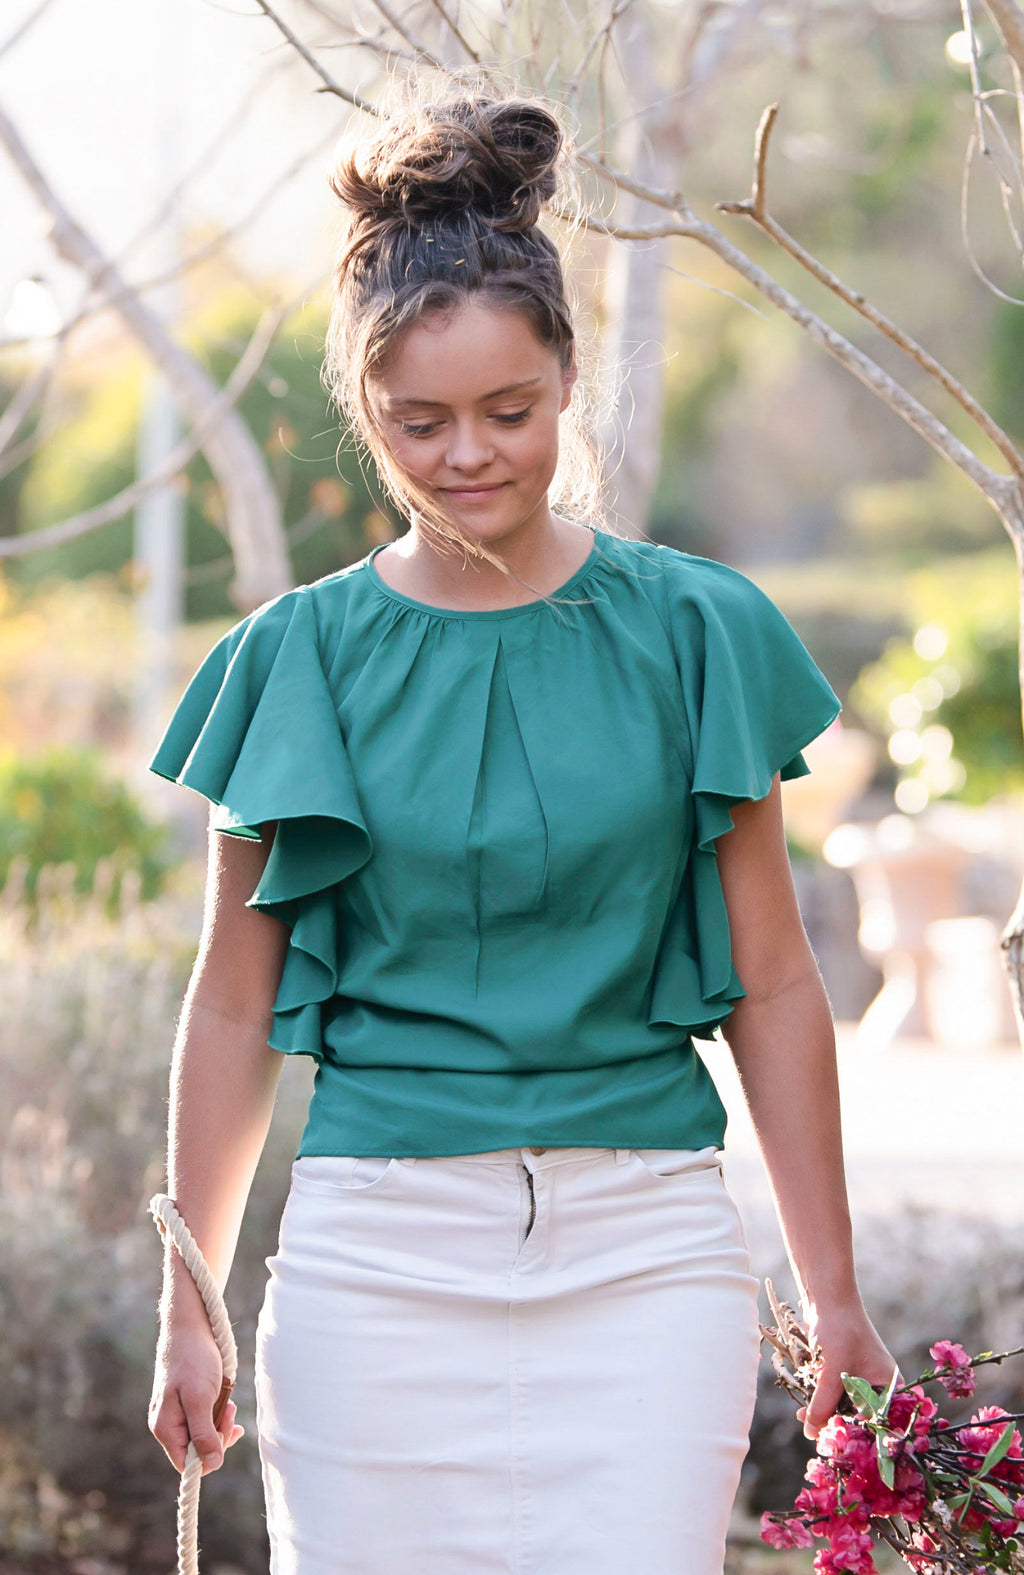 Modest Fashion Label Australia | Feminine Island Green Frilled Sleeve Bamboo Top | Modest Tops Australia | Cousin Billie